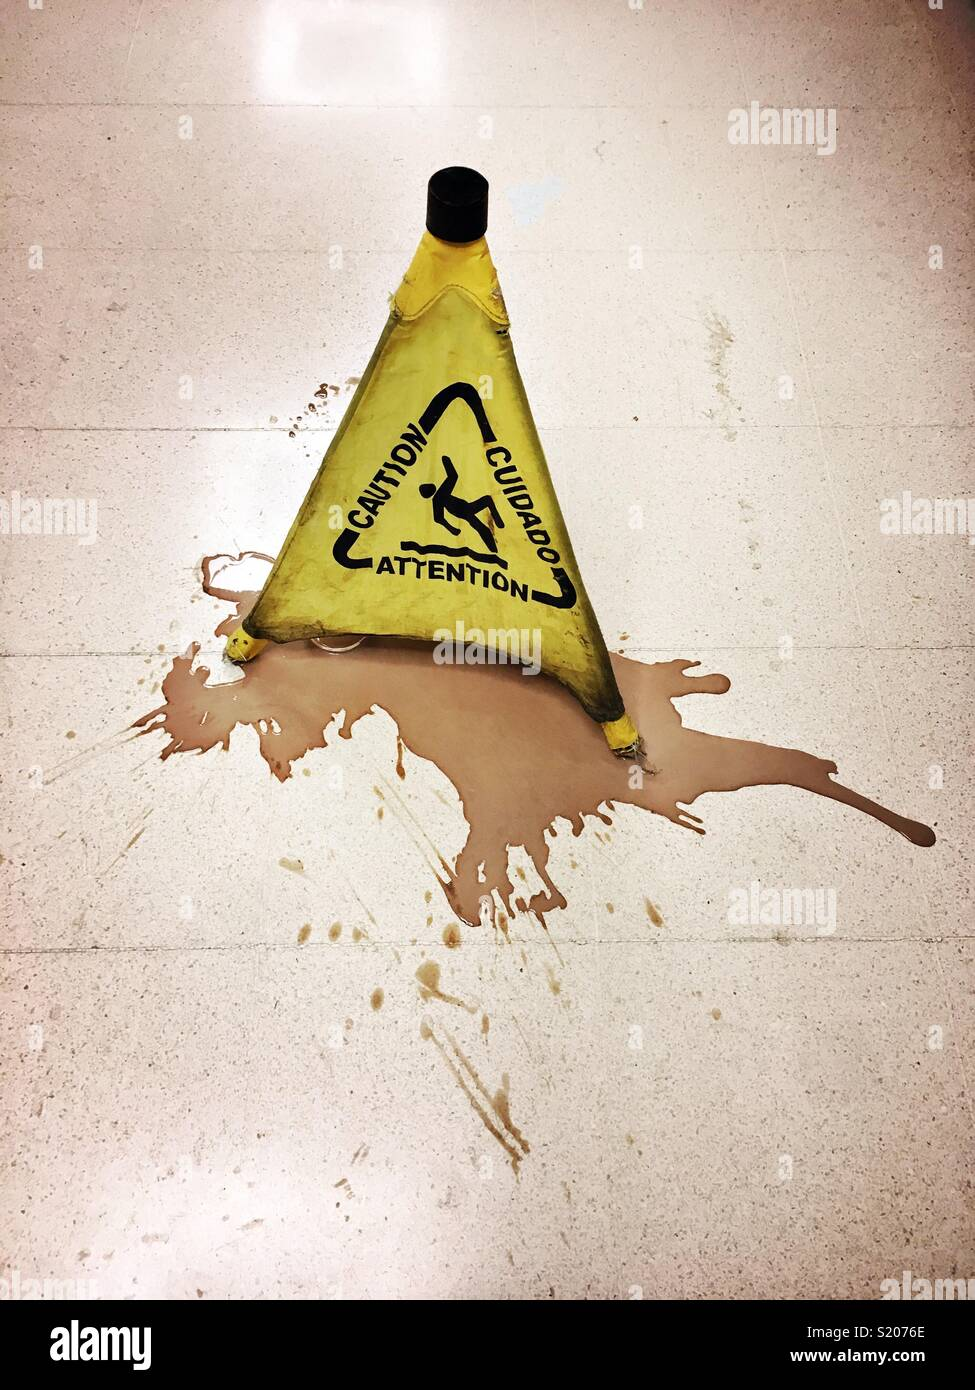 Slippery surface warning sign was placed after some liquid was spilled  on the floor. - Stock Image